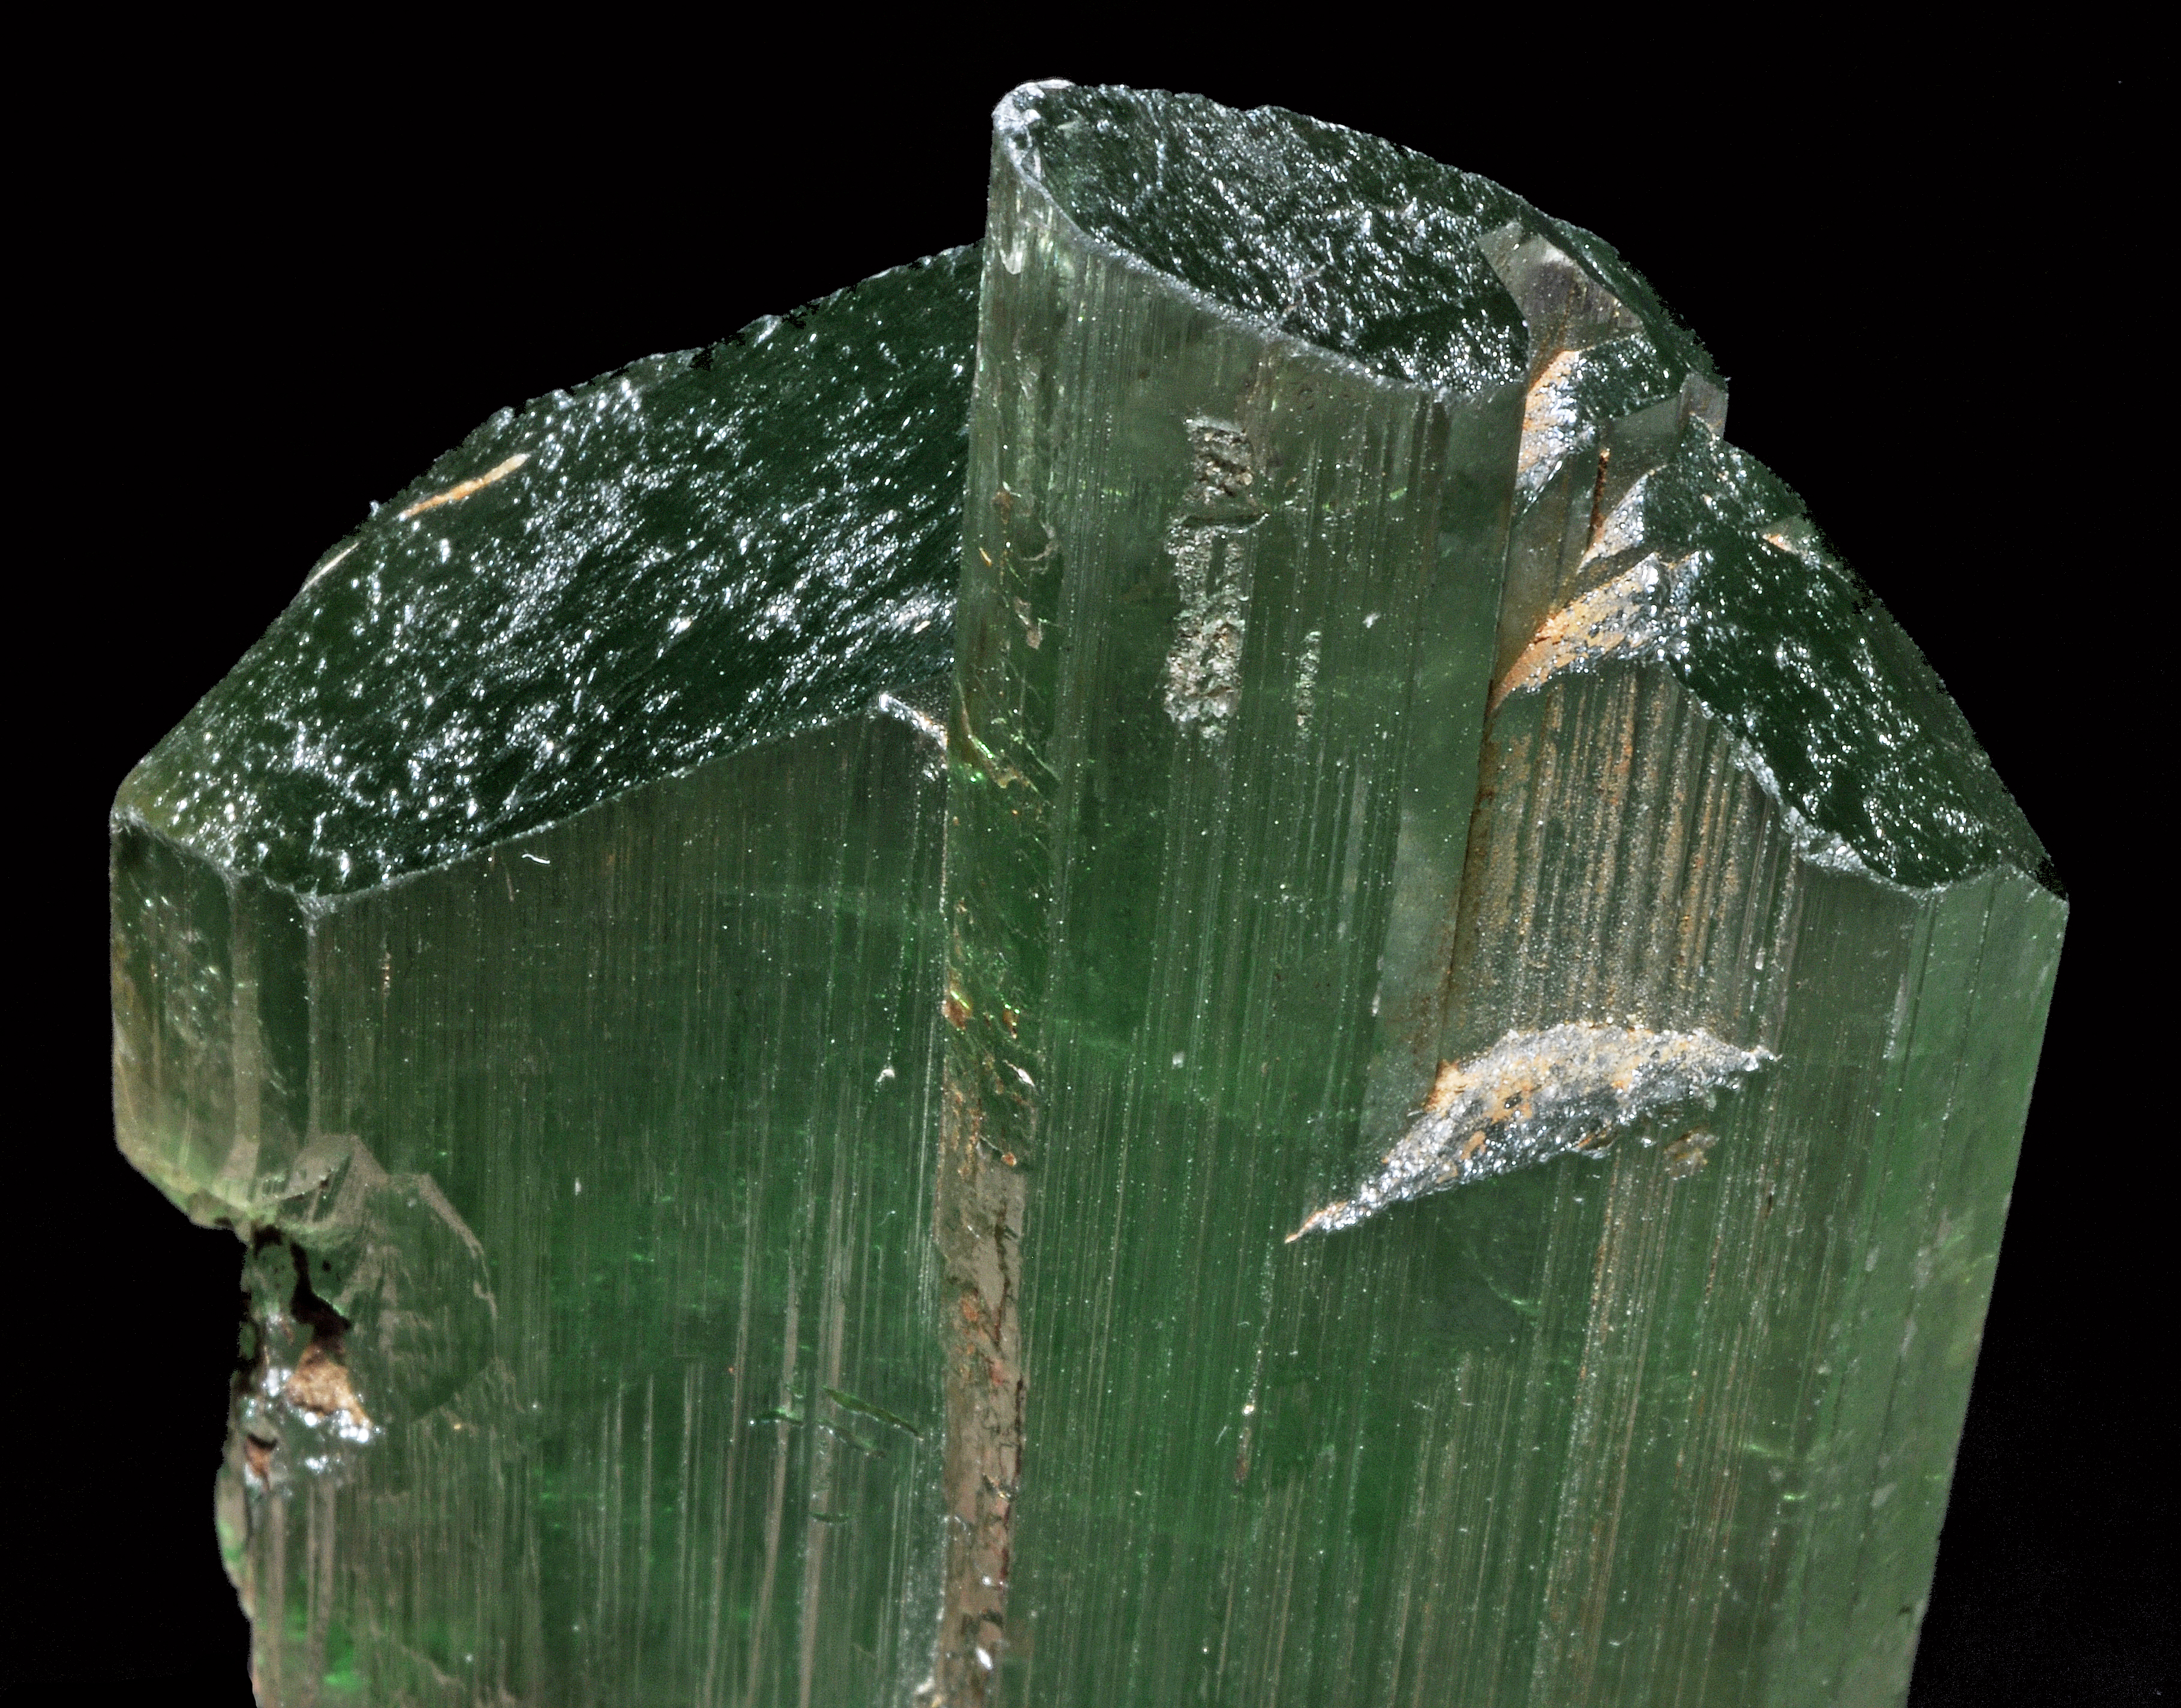 hiddenite dating The sharpes emerald prospect is located in hiddenite, nc in the most productive   to obtain permission to collect and schedule a date for your field trip, simply.